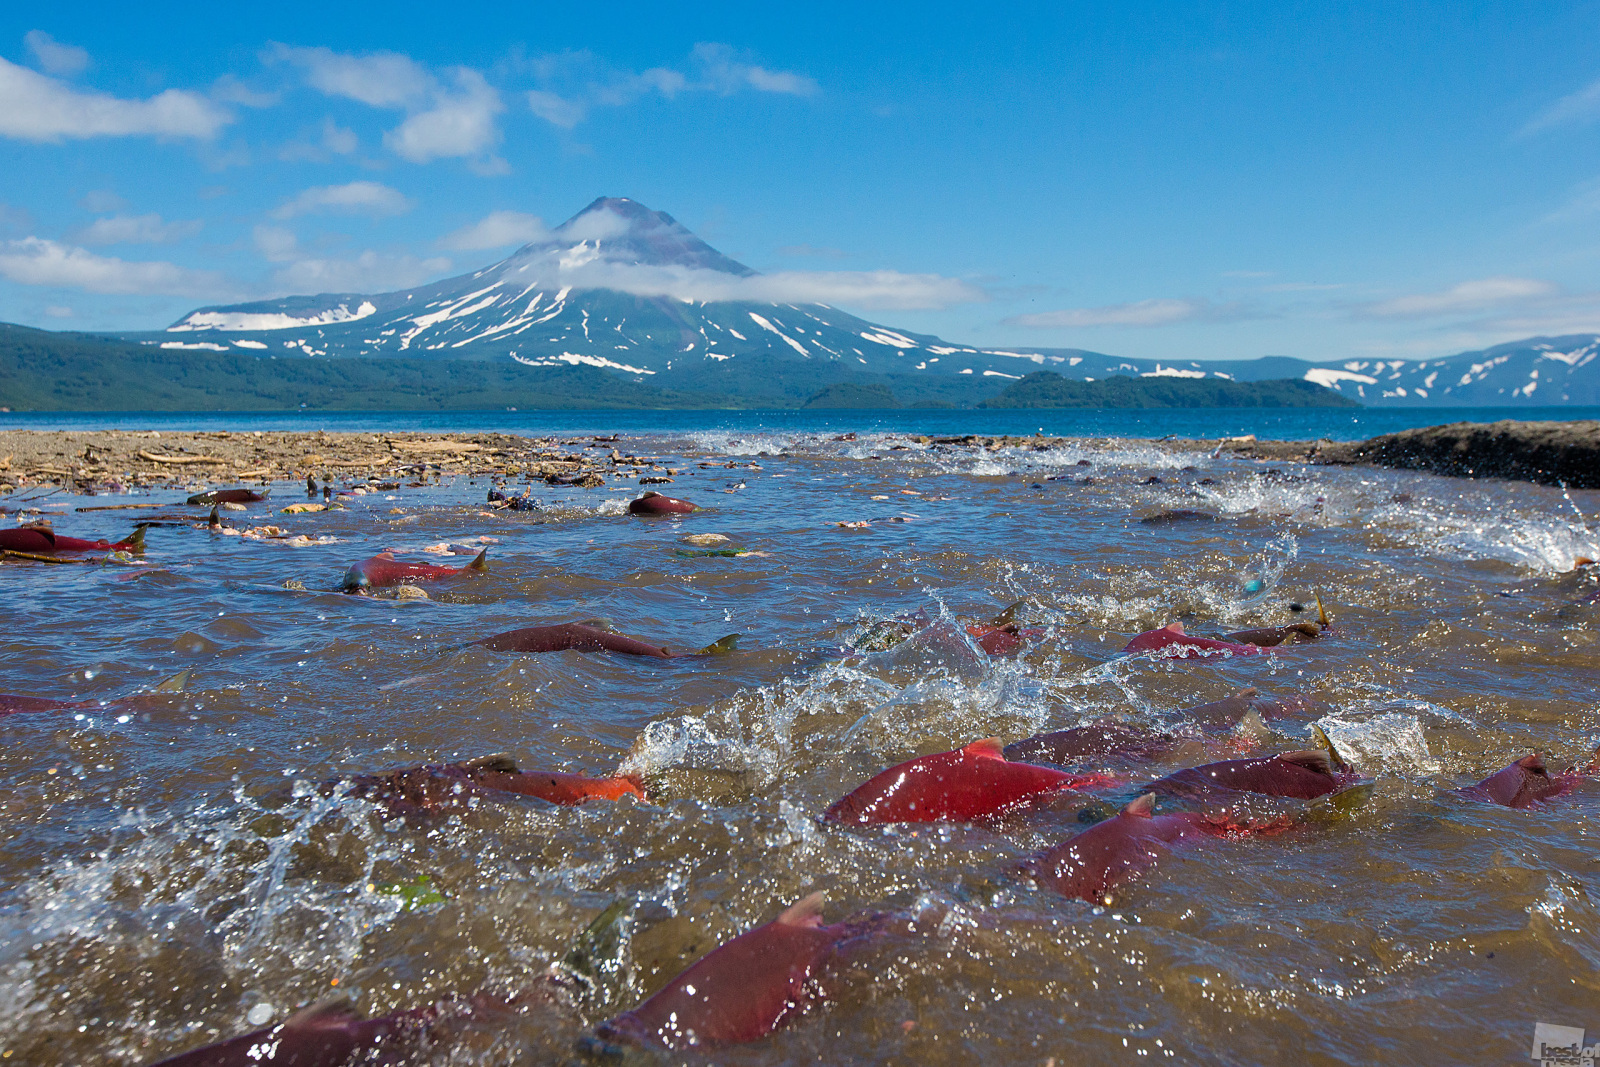 Scientists have still not found the answer to the question of why salmon return to the place they were born to spawn. Nevertheless, several million red salmon swim to the Kuril Lake every year in order to reach their birthplace to breed and then die near the nest of eggs they've just laid. Each year, these intrepid fish make the long, hard journey from the ocean back home, swimming against the current and overcoming many obstacles. All this to give their lives for the sake of the next generation. Yuzhno-Kamchatsky Wildlife Reserve, Kamchatka Krai.